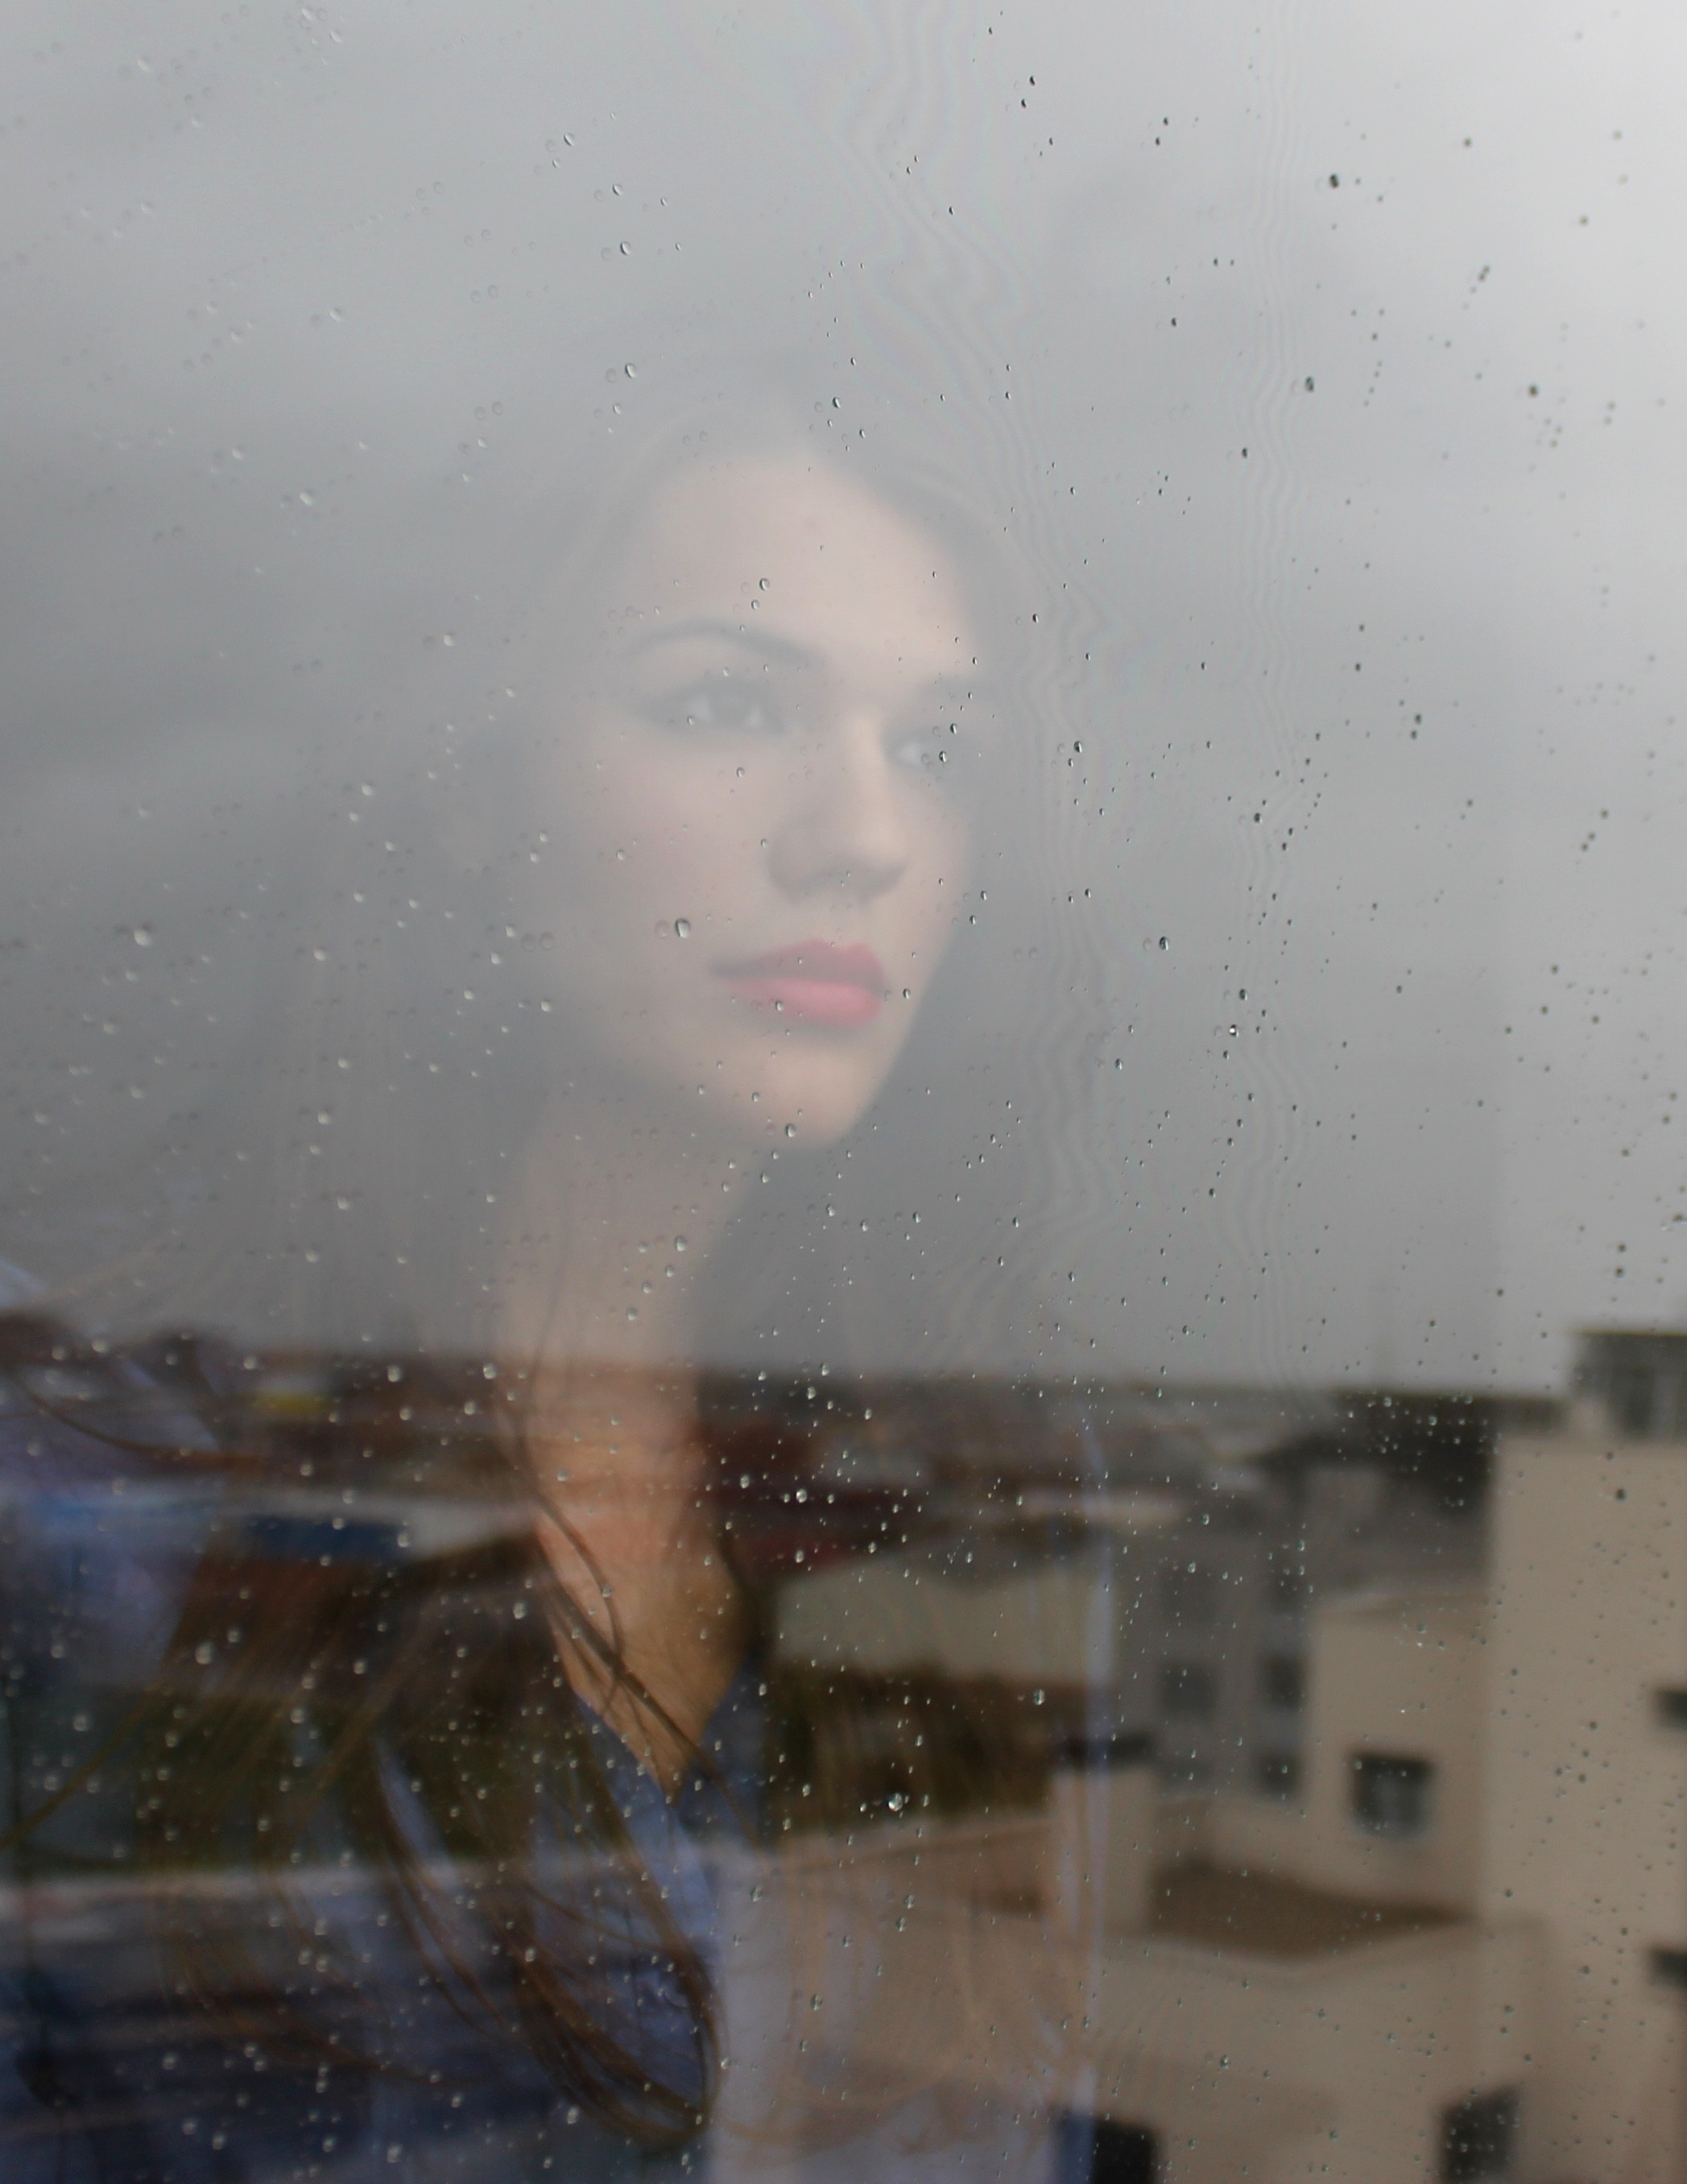 brunette looking out window raining jpeg